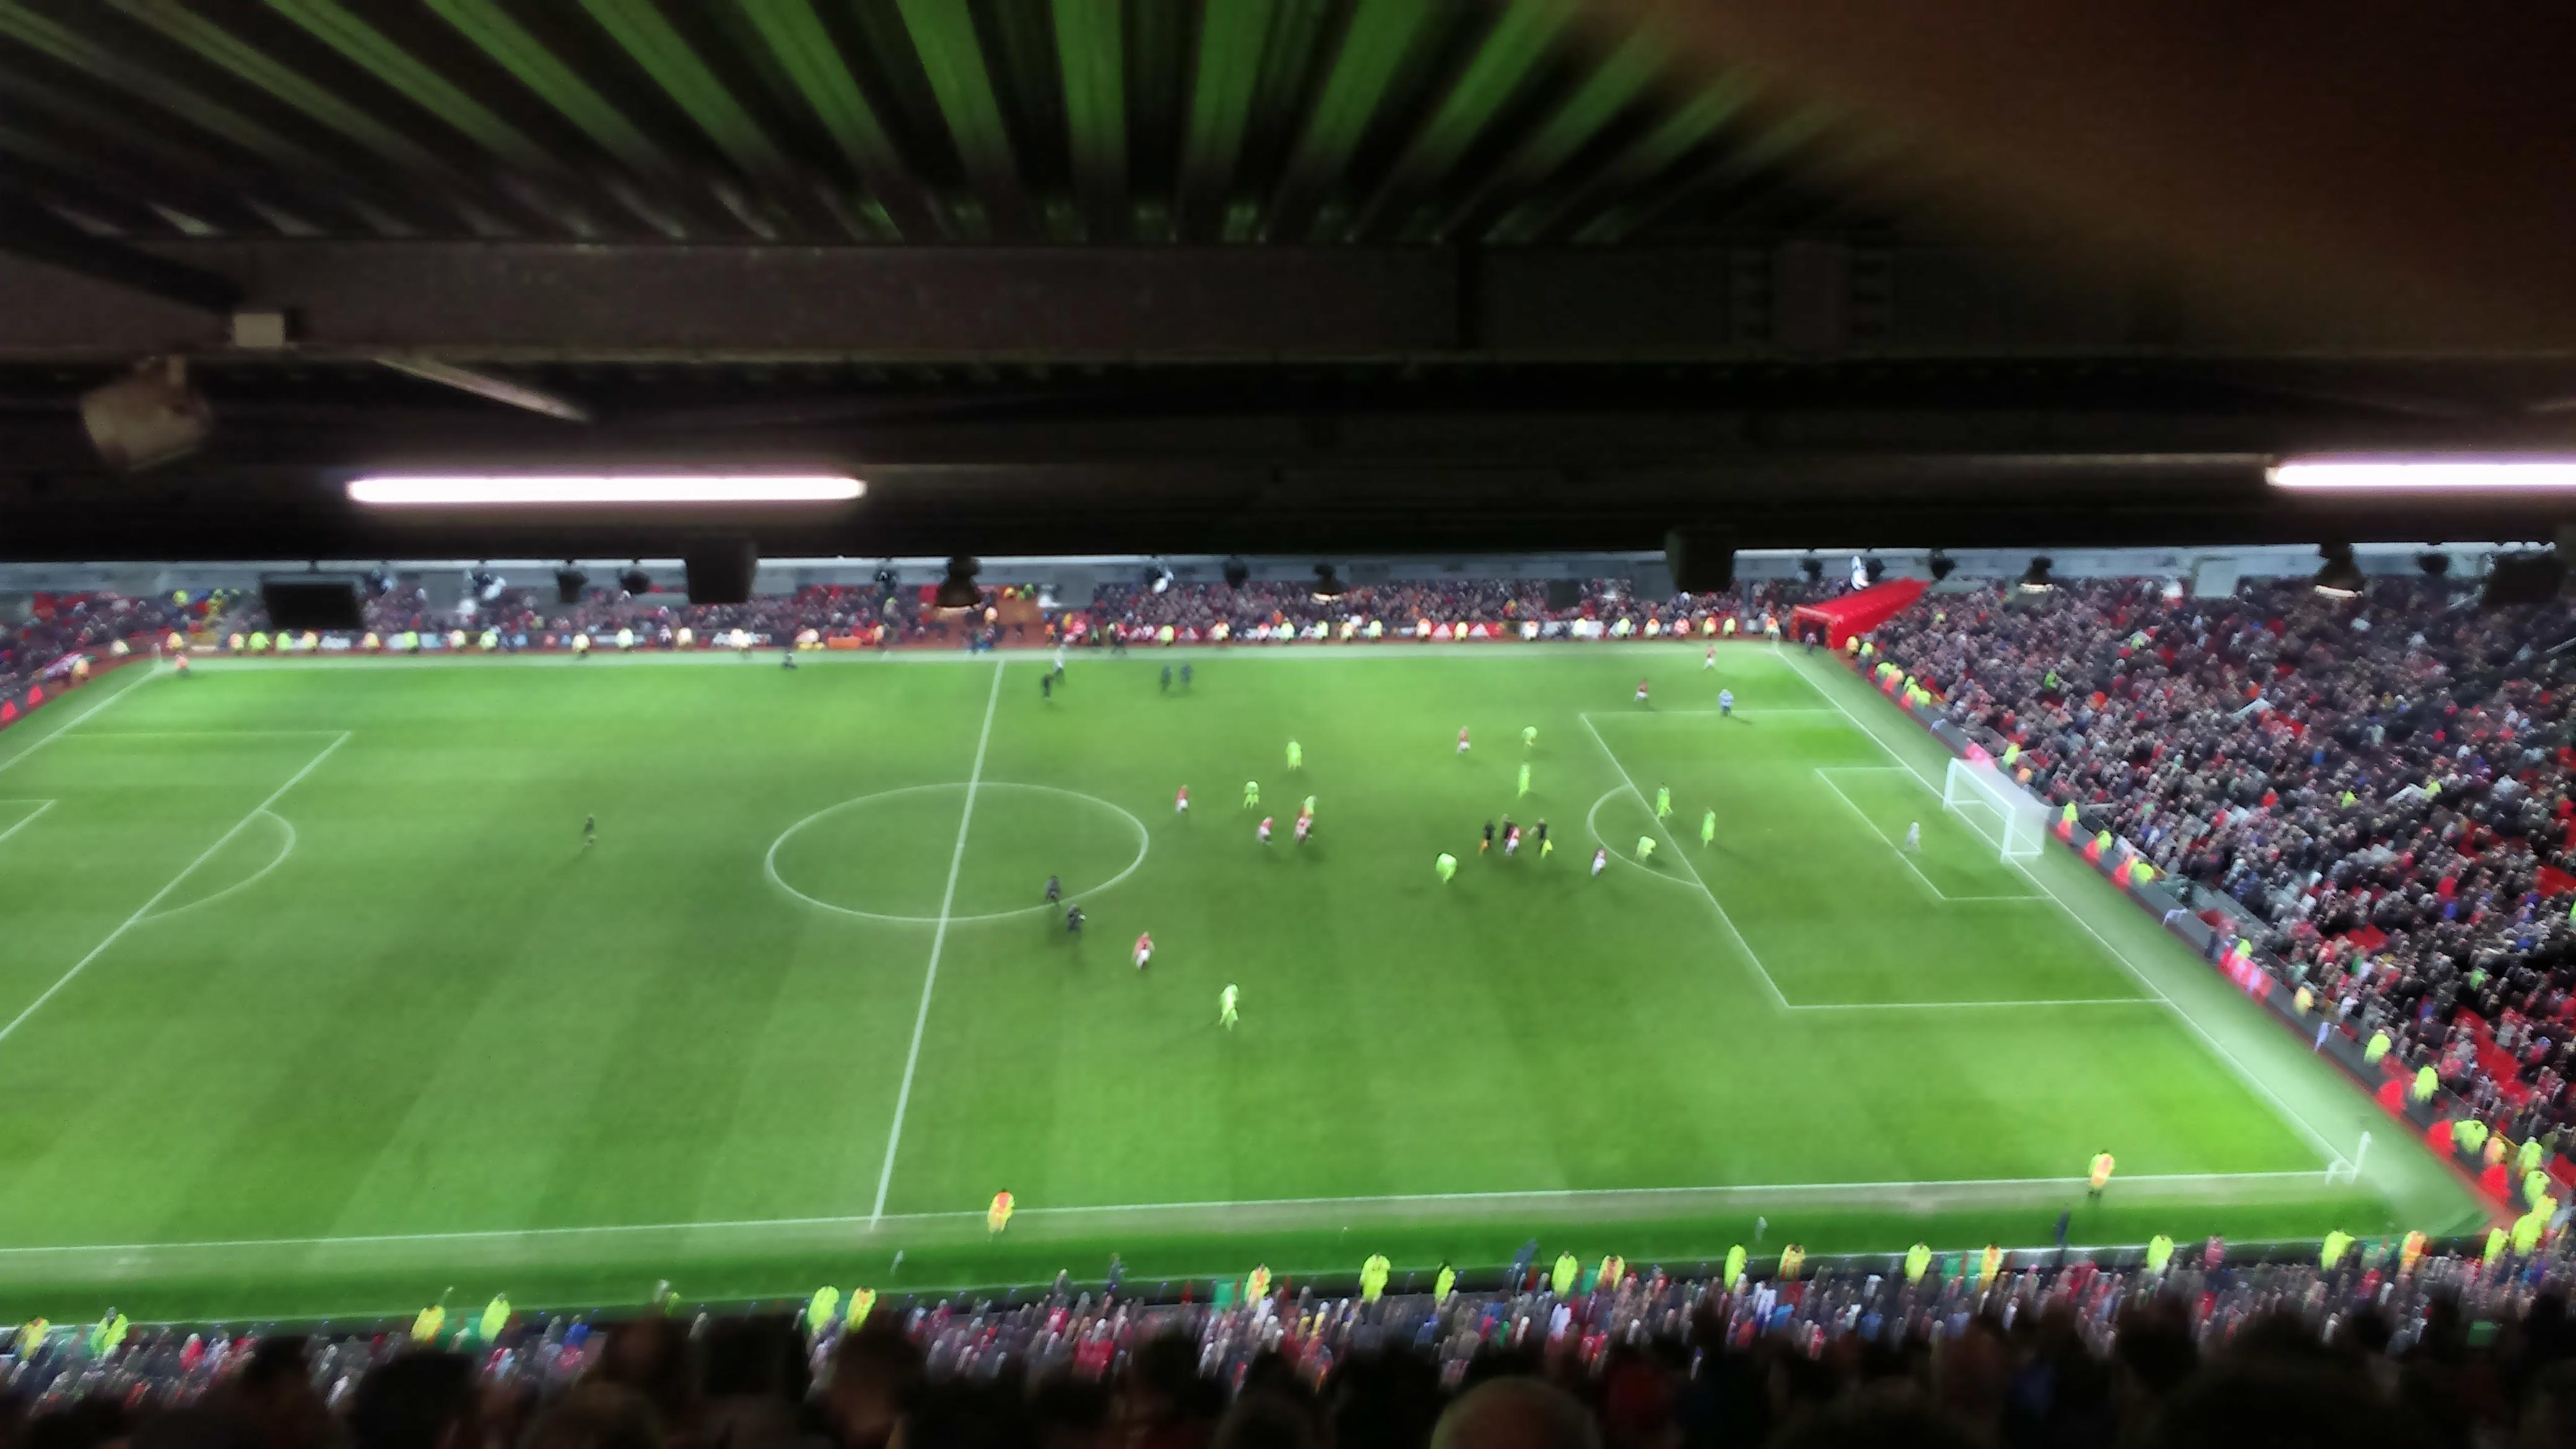 Old Trafford Section N4405 Row 19